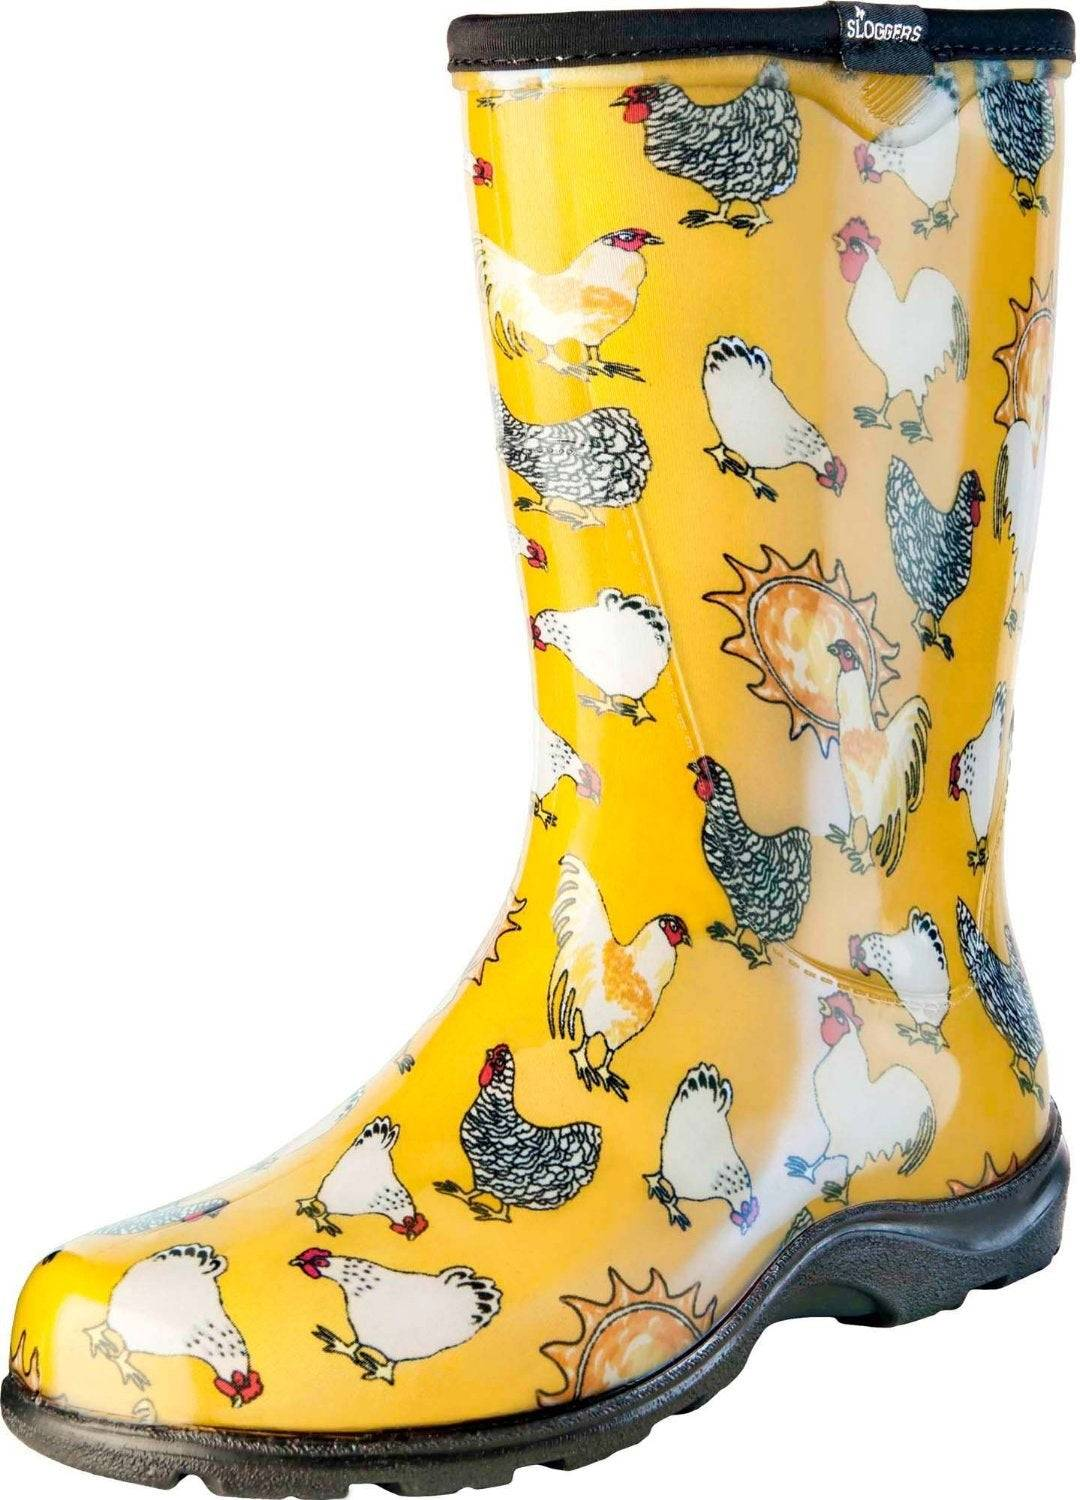 Sloggers 5016cdy06 Women's Rain And Garden Boots, Size 6, Daffodil Yellow